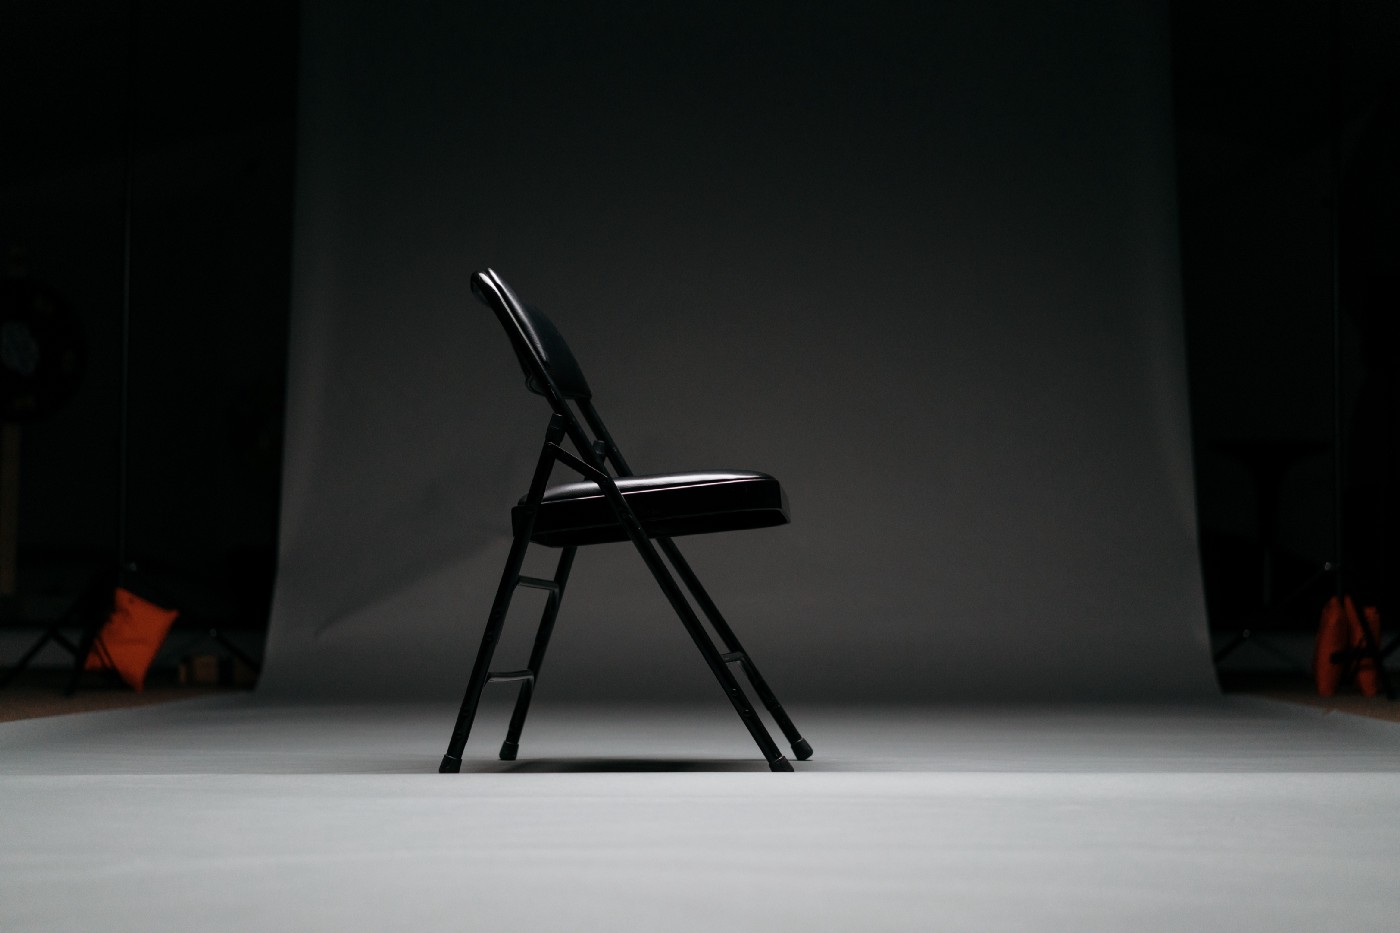 Black chair in an empty room